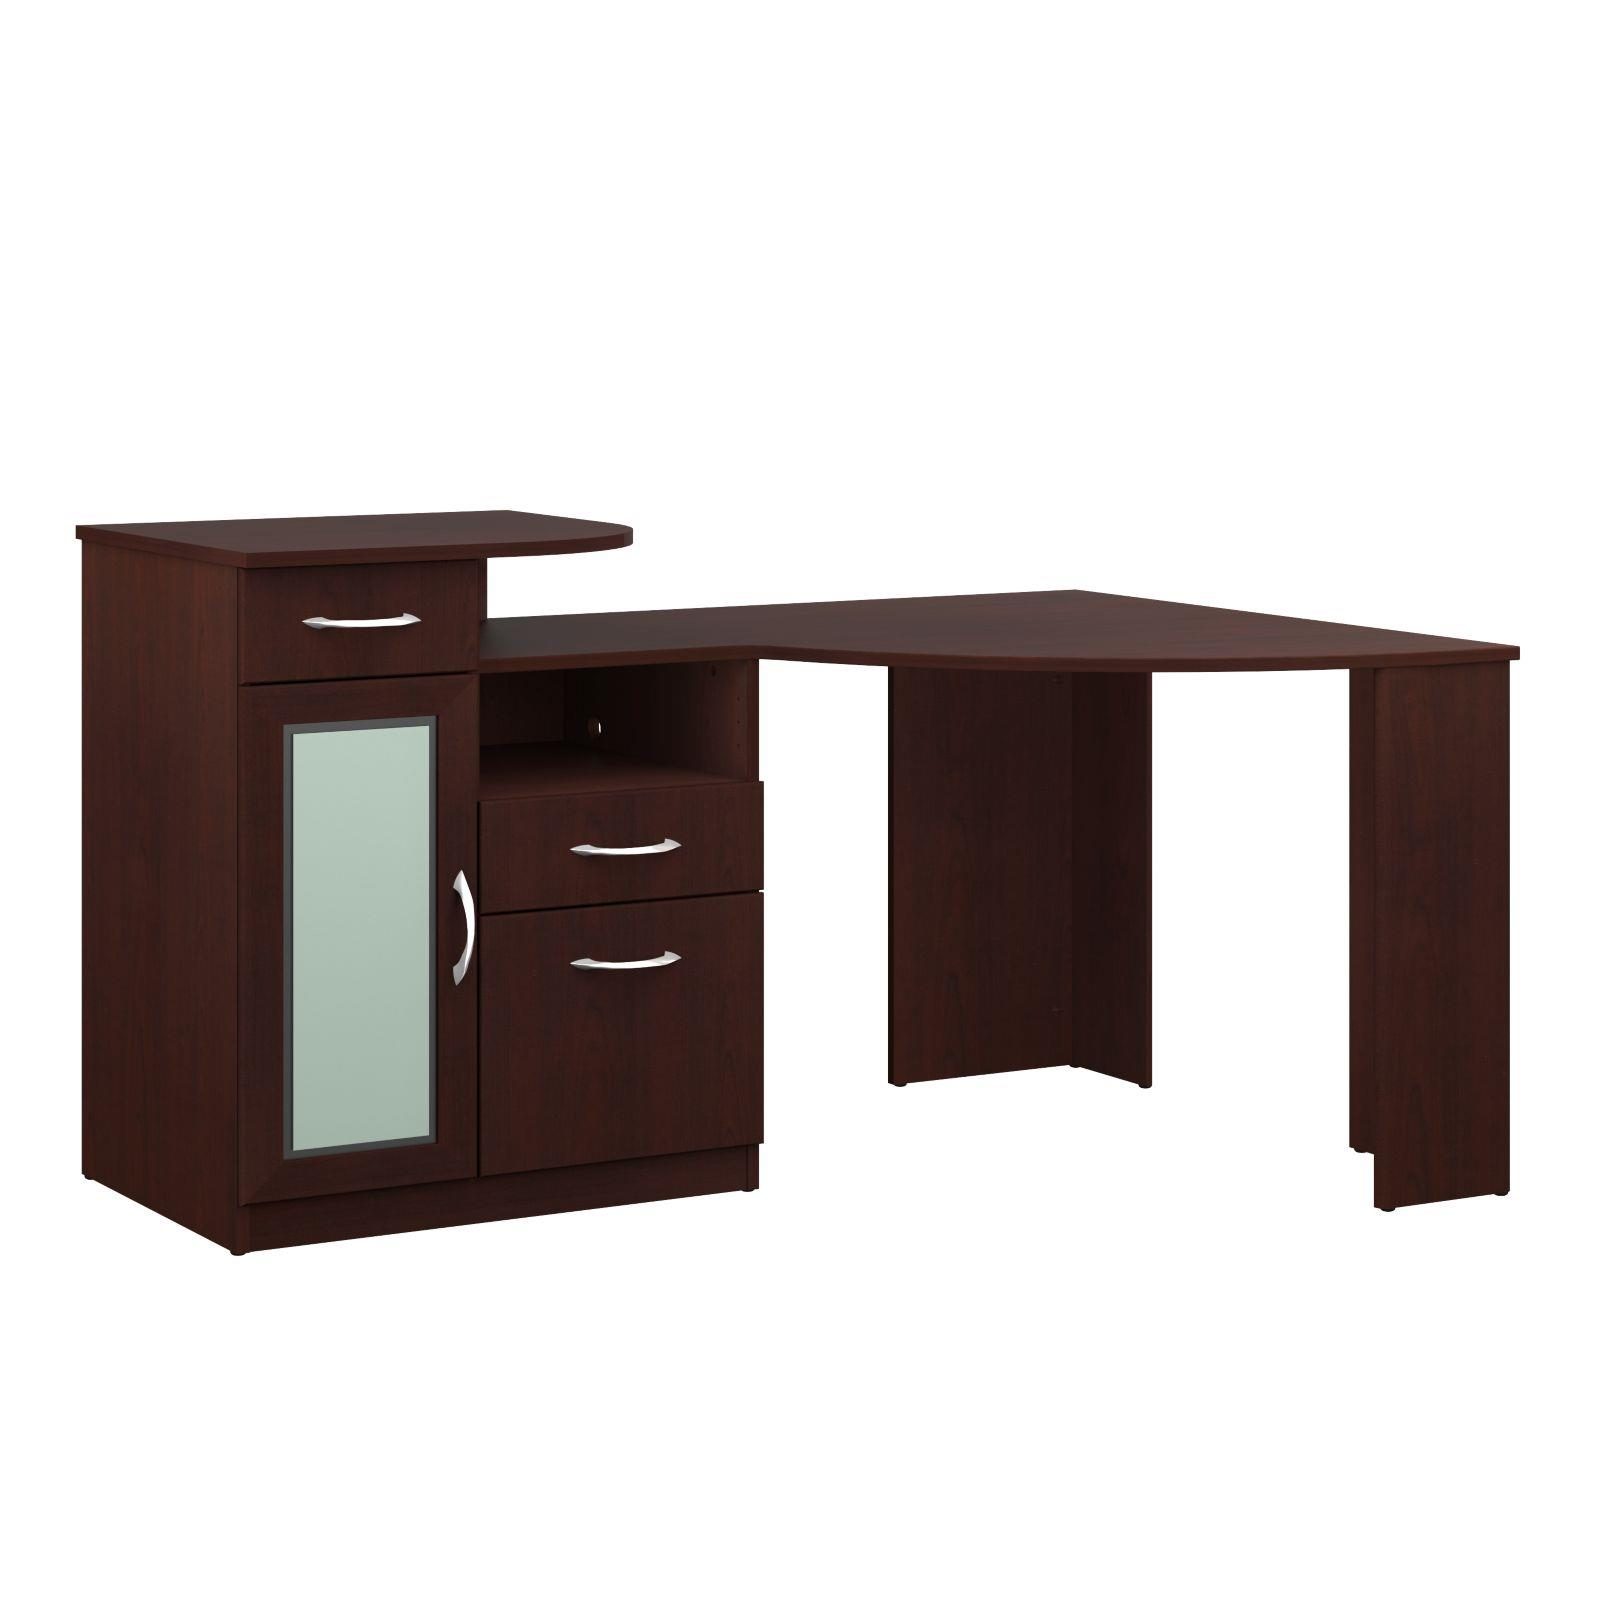 Bush Furniture Corner Desk By Oj Commerce Hm66115 03 254 96